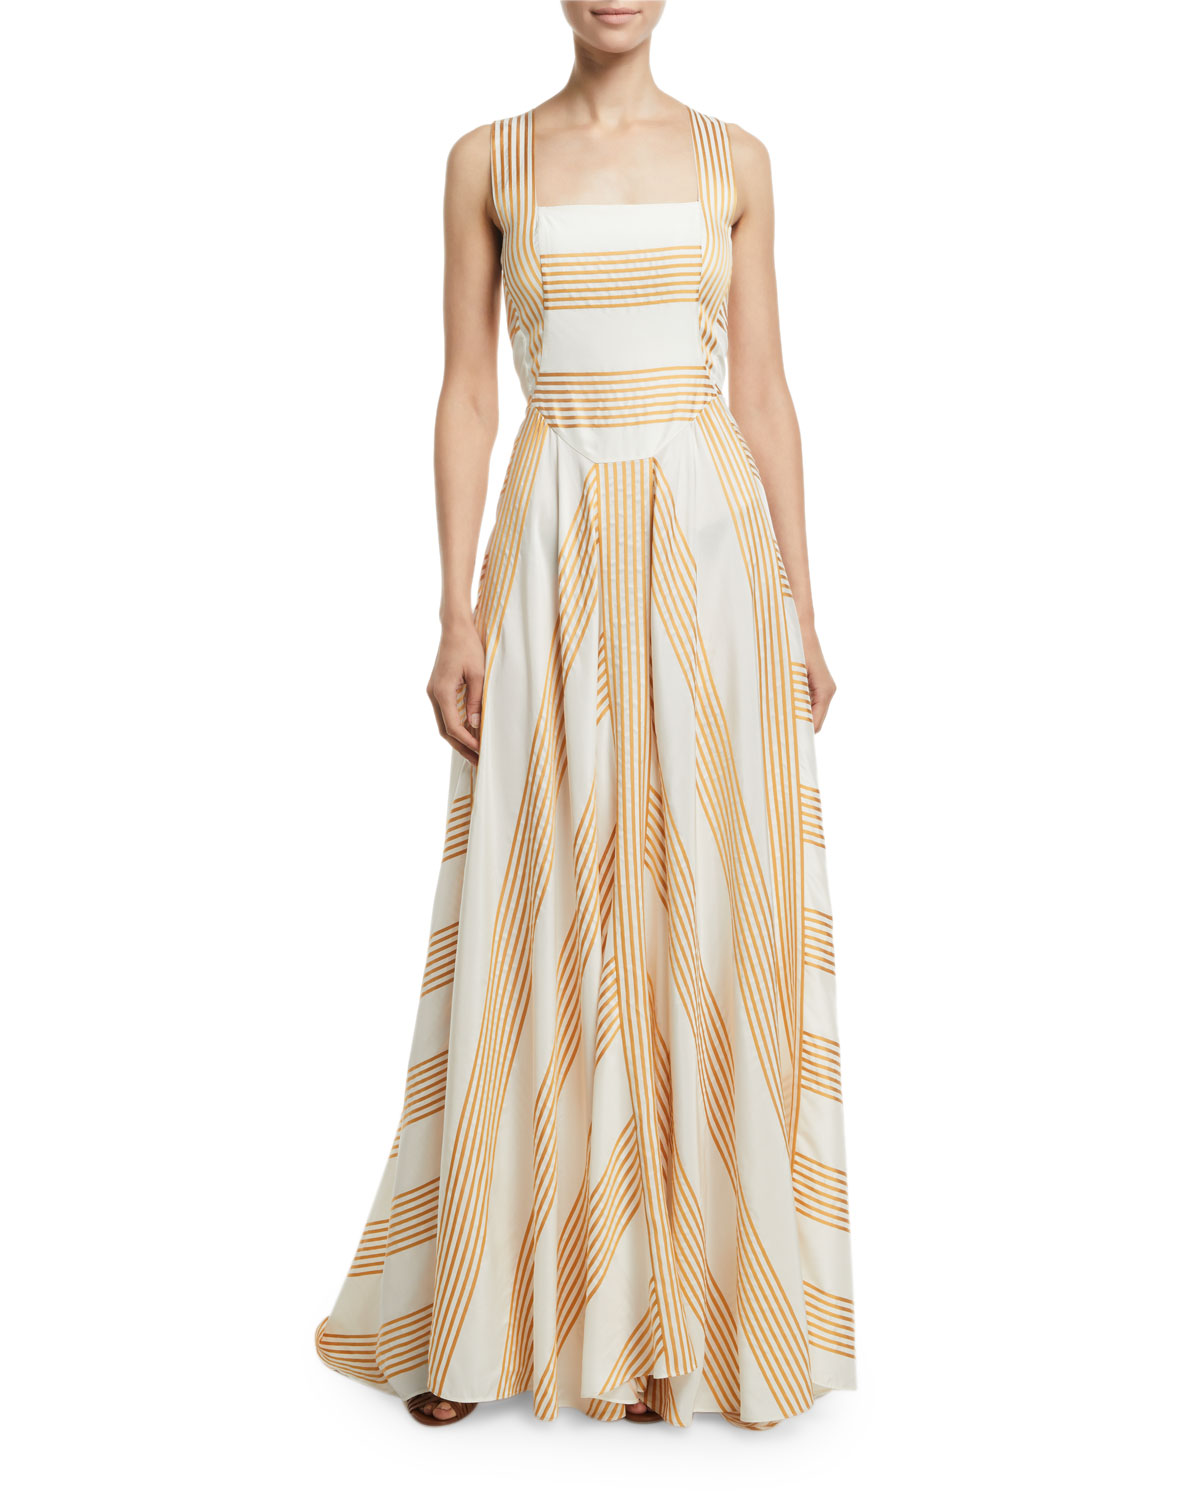 Camille Long Miter-Stripe Sundress by Loro Piana, available on neimanmarcus.com for $3500 Angelina Jolie Dress Exact Product